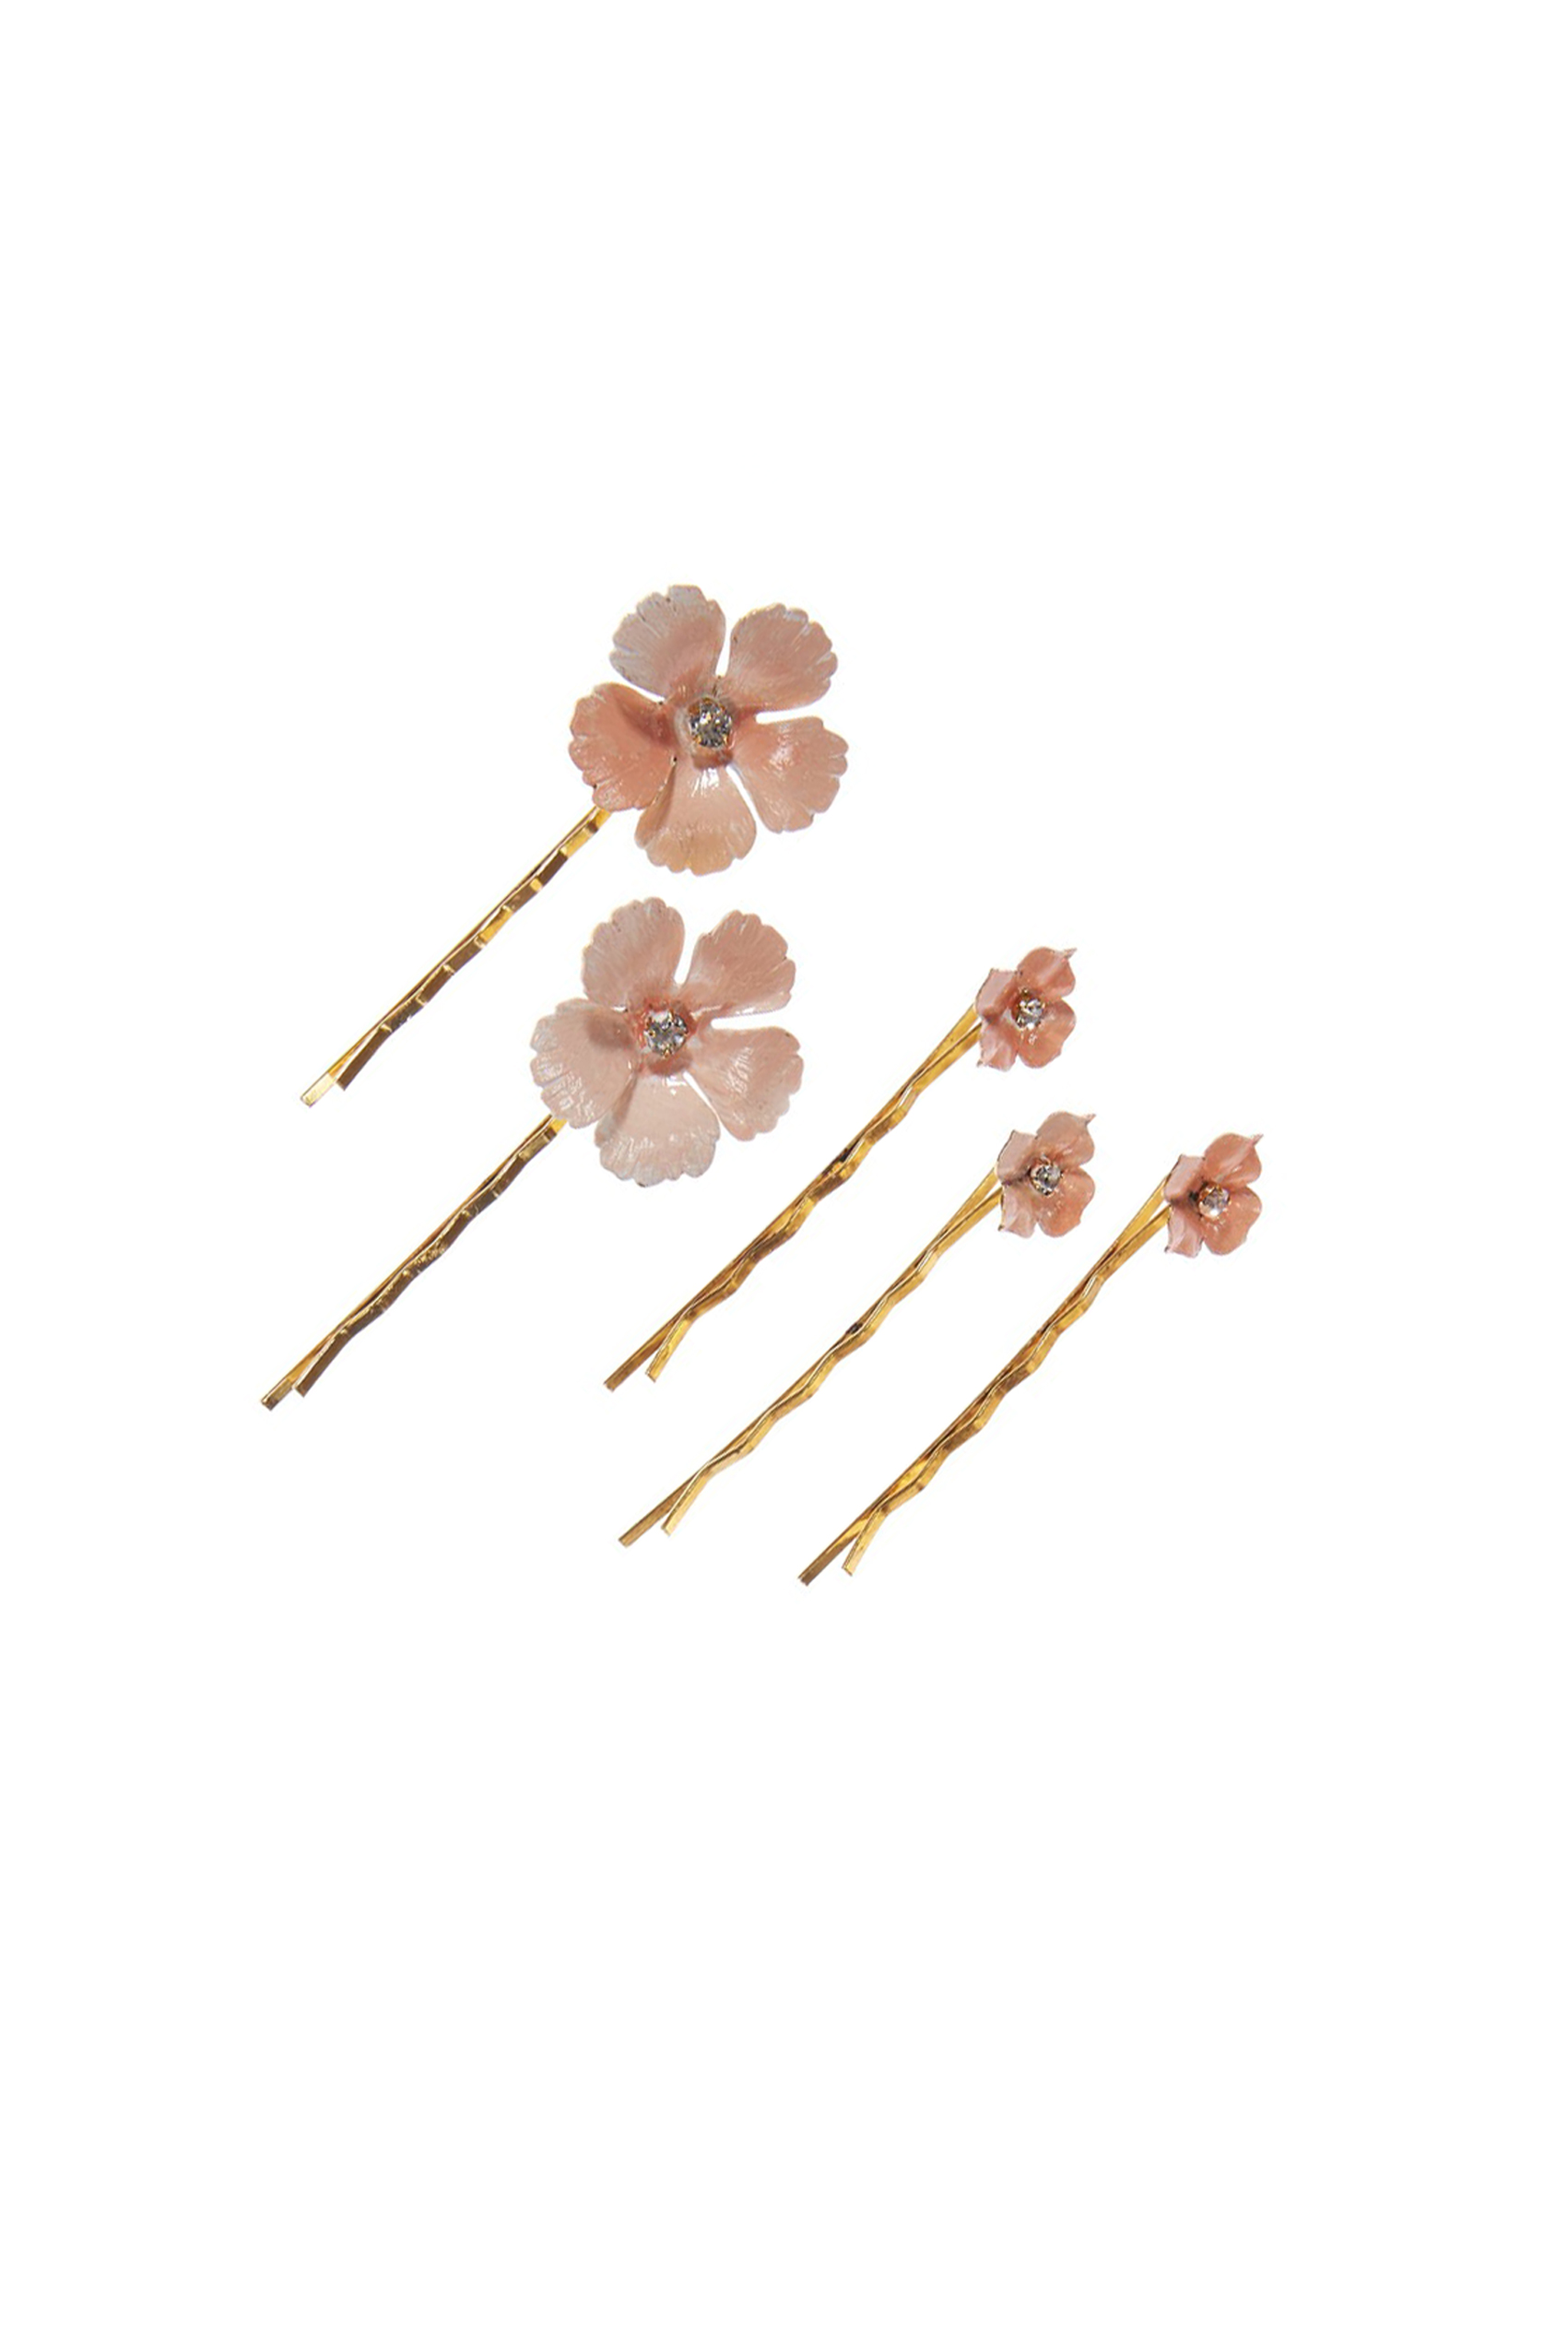 [RENTAL][Juliette Bobby Pin Pink]by JENNIFER BEHR(参考価格¥25,740)